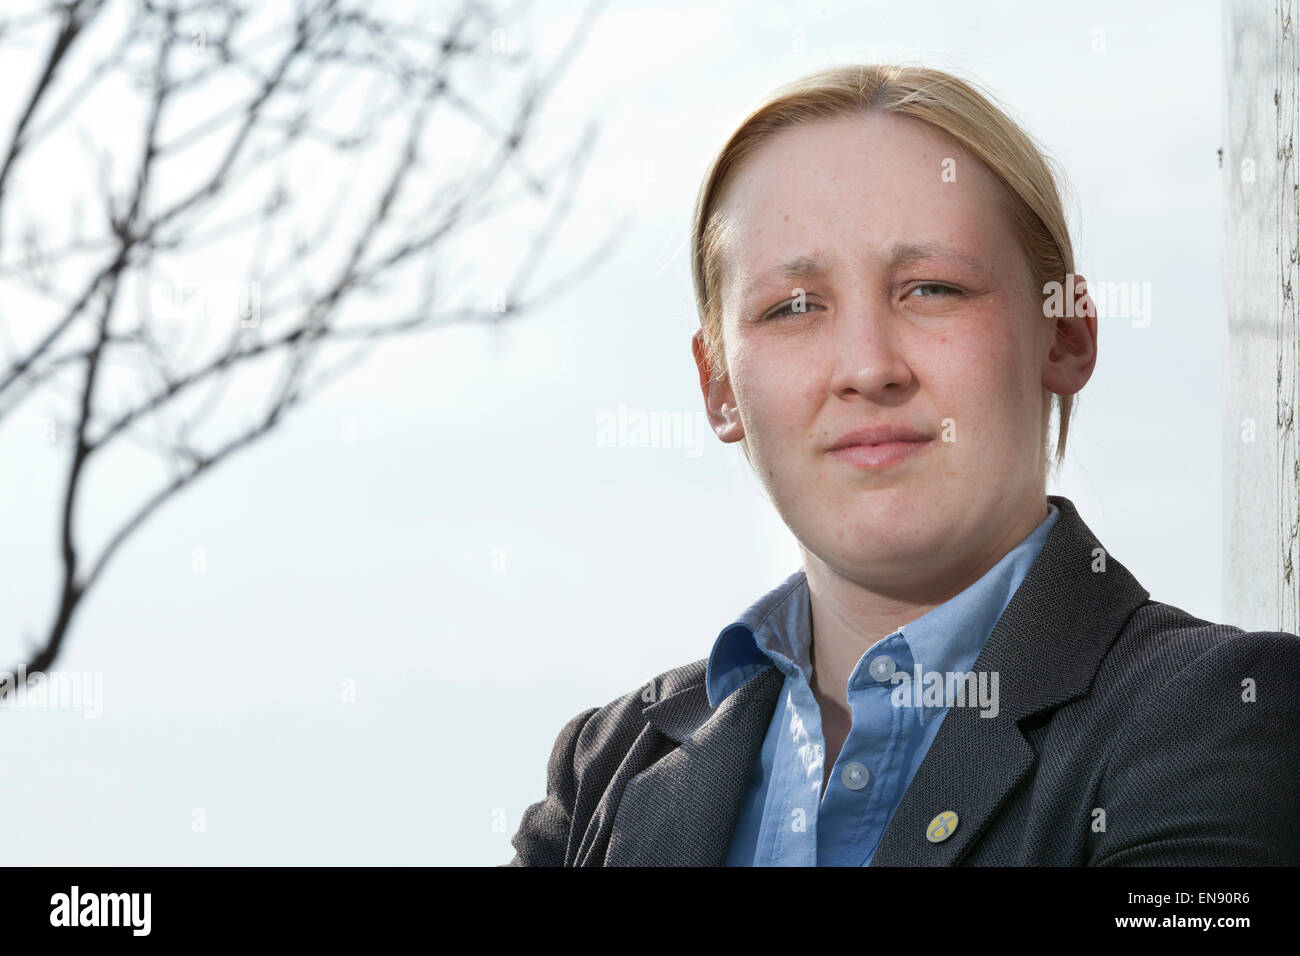 Mhairi Black, the 20 year-old SNP candidate for Paisley and Renfrewshire South who is challenging Labour's Douglas - Stock Image